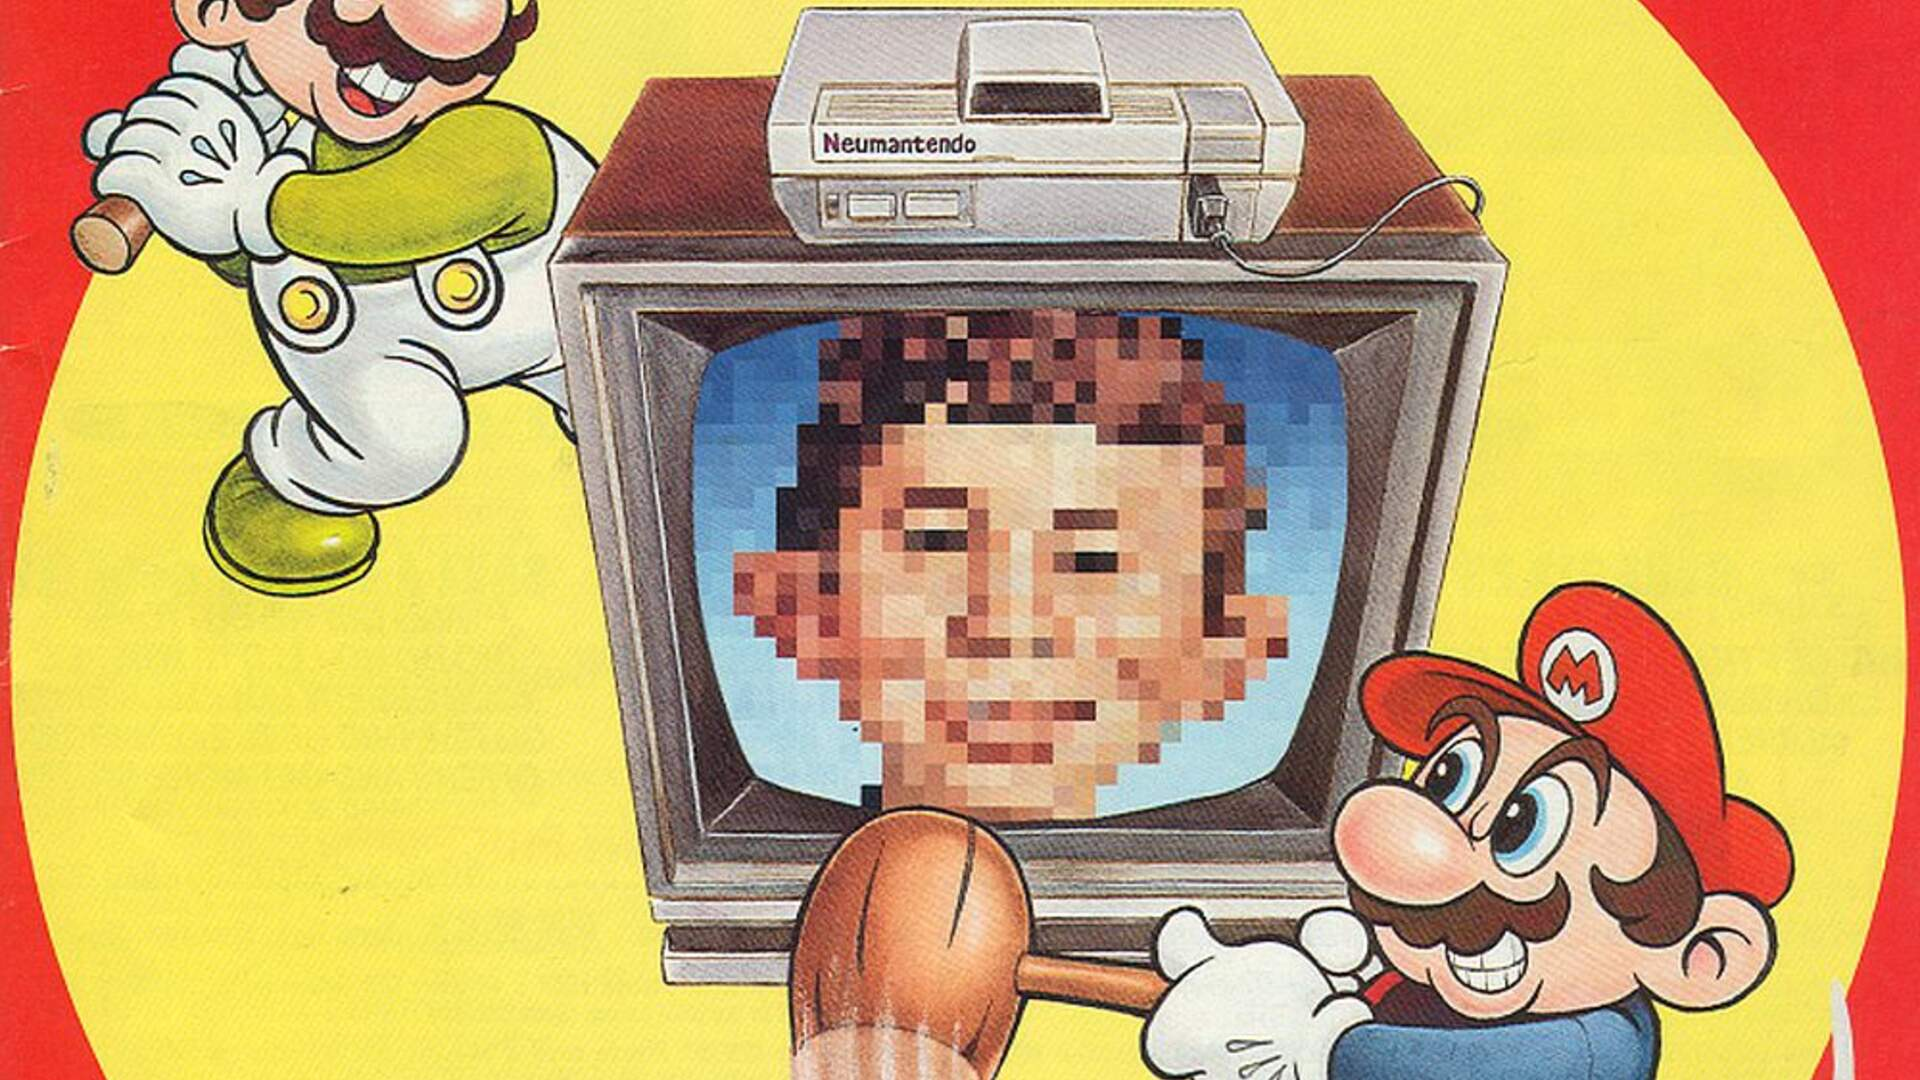 MAD Magazine Published the Ultimate Video Game Parody in its January 1990 Issue